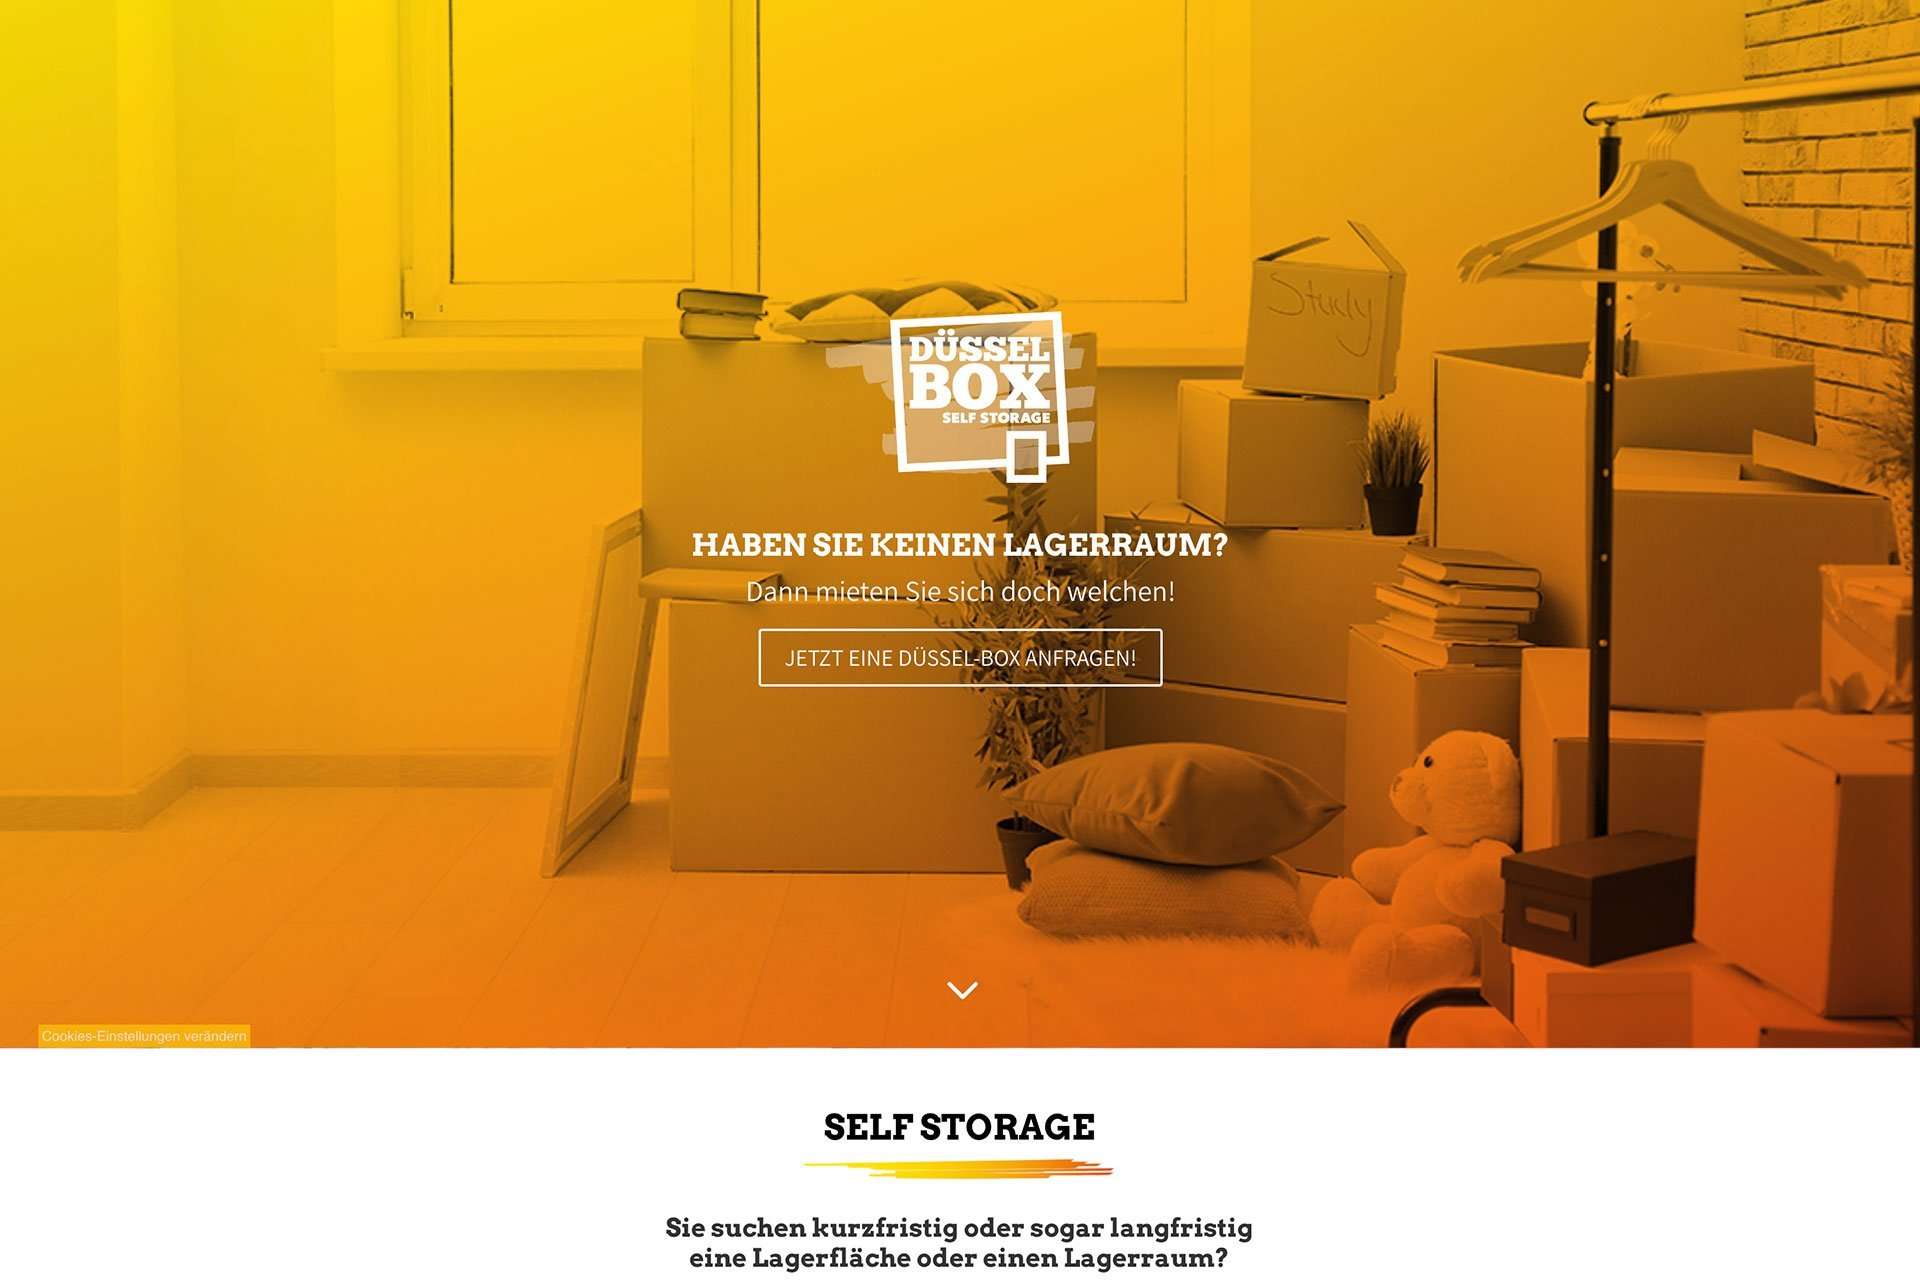 digitalloptsen-dussel-box-sefstorage-webdesign-wordpress-hattingen_01